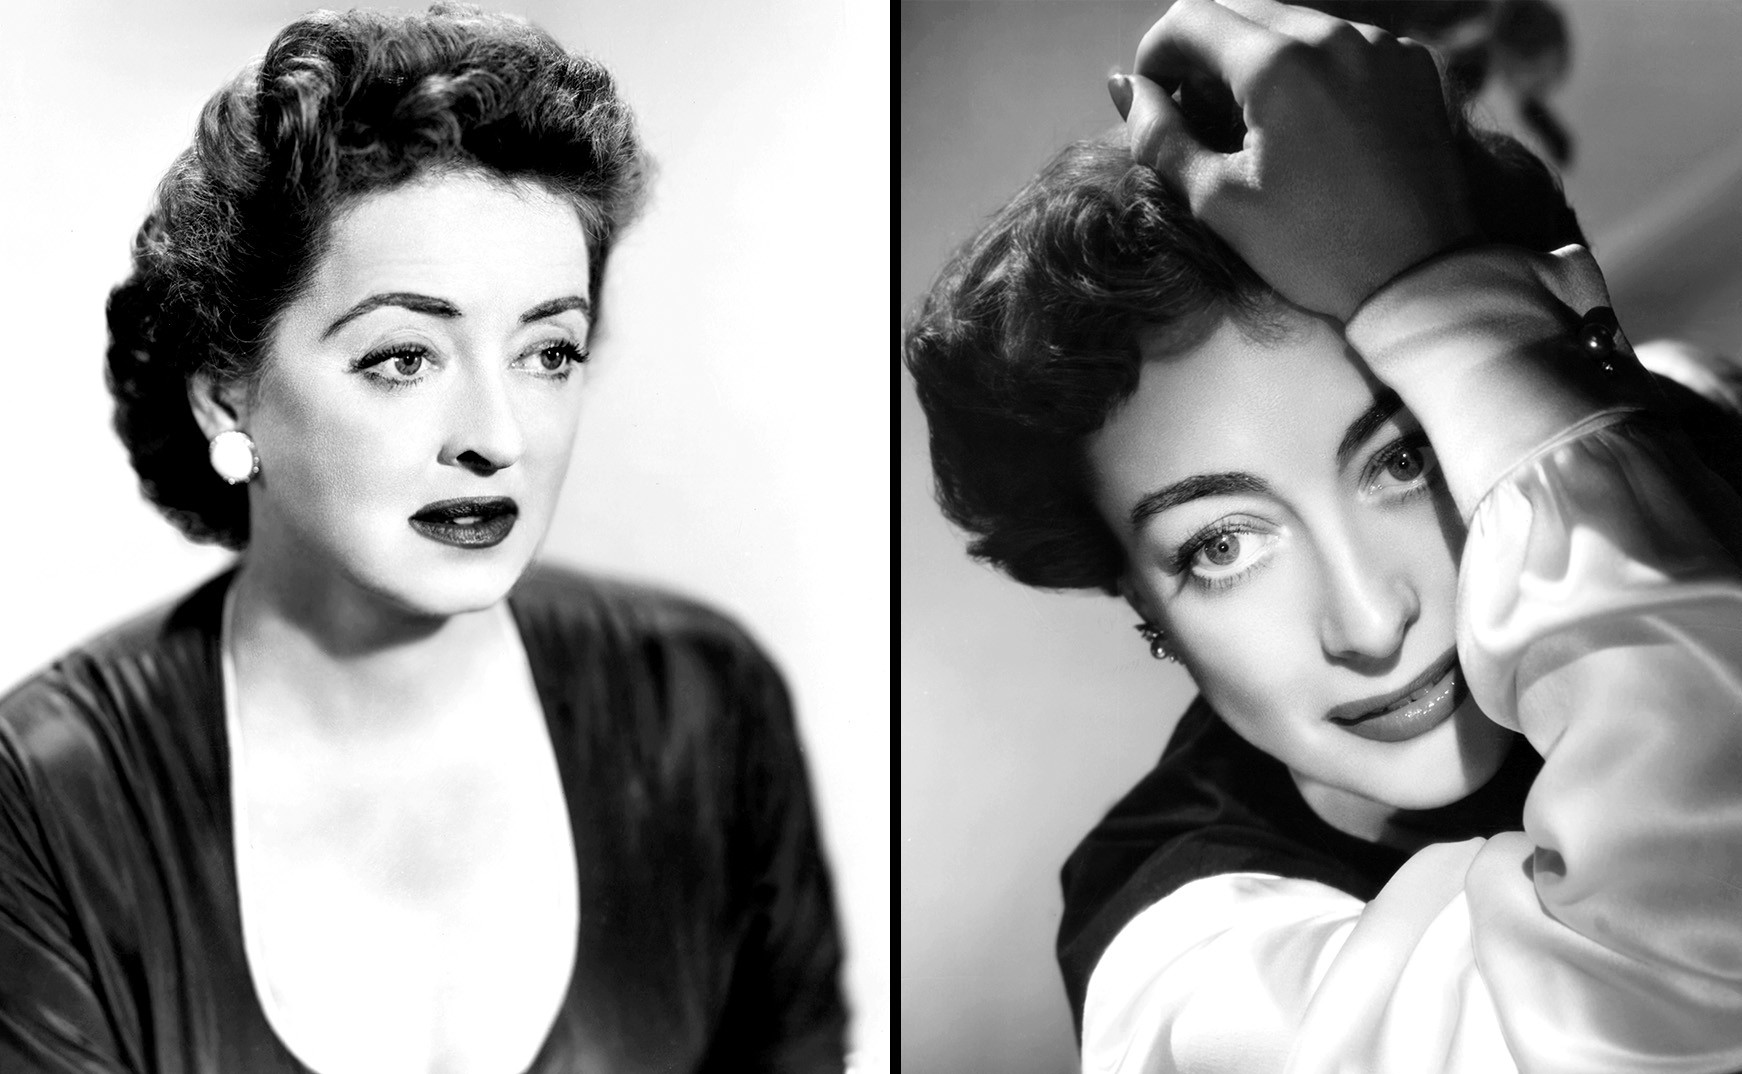 Love Bette Davis and Joan Crawford? Here's 6 movies you can